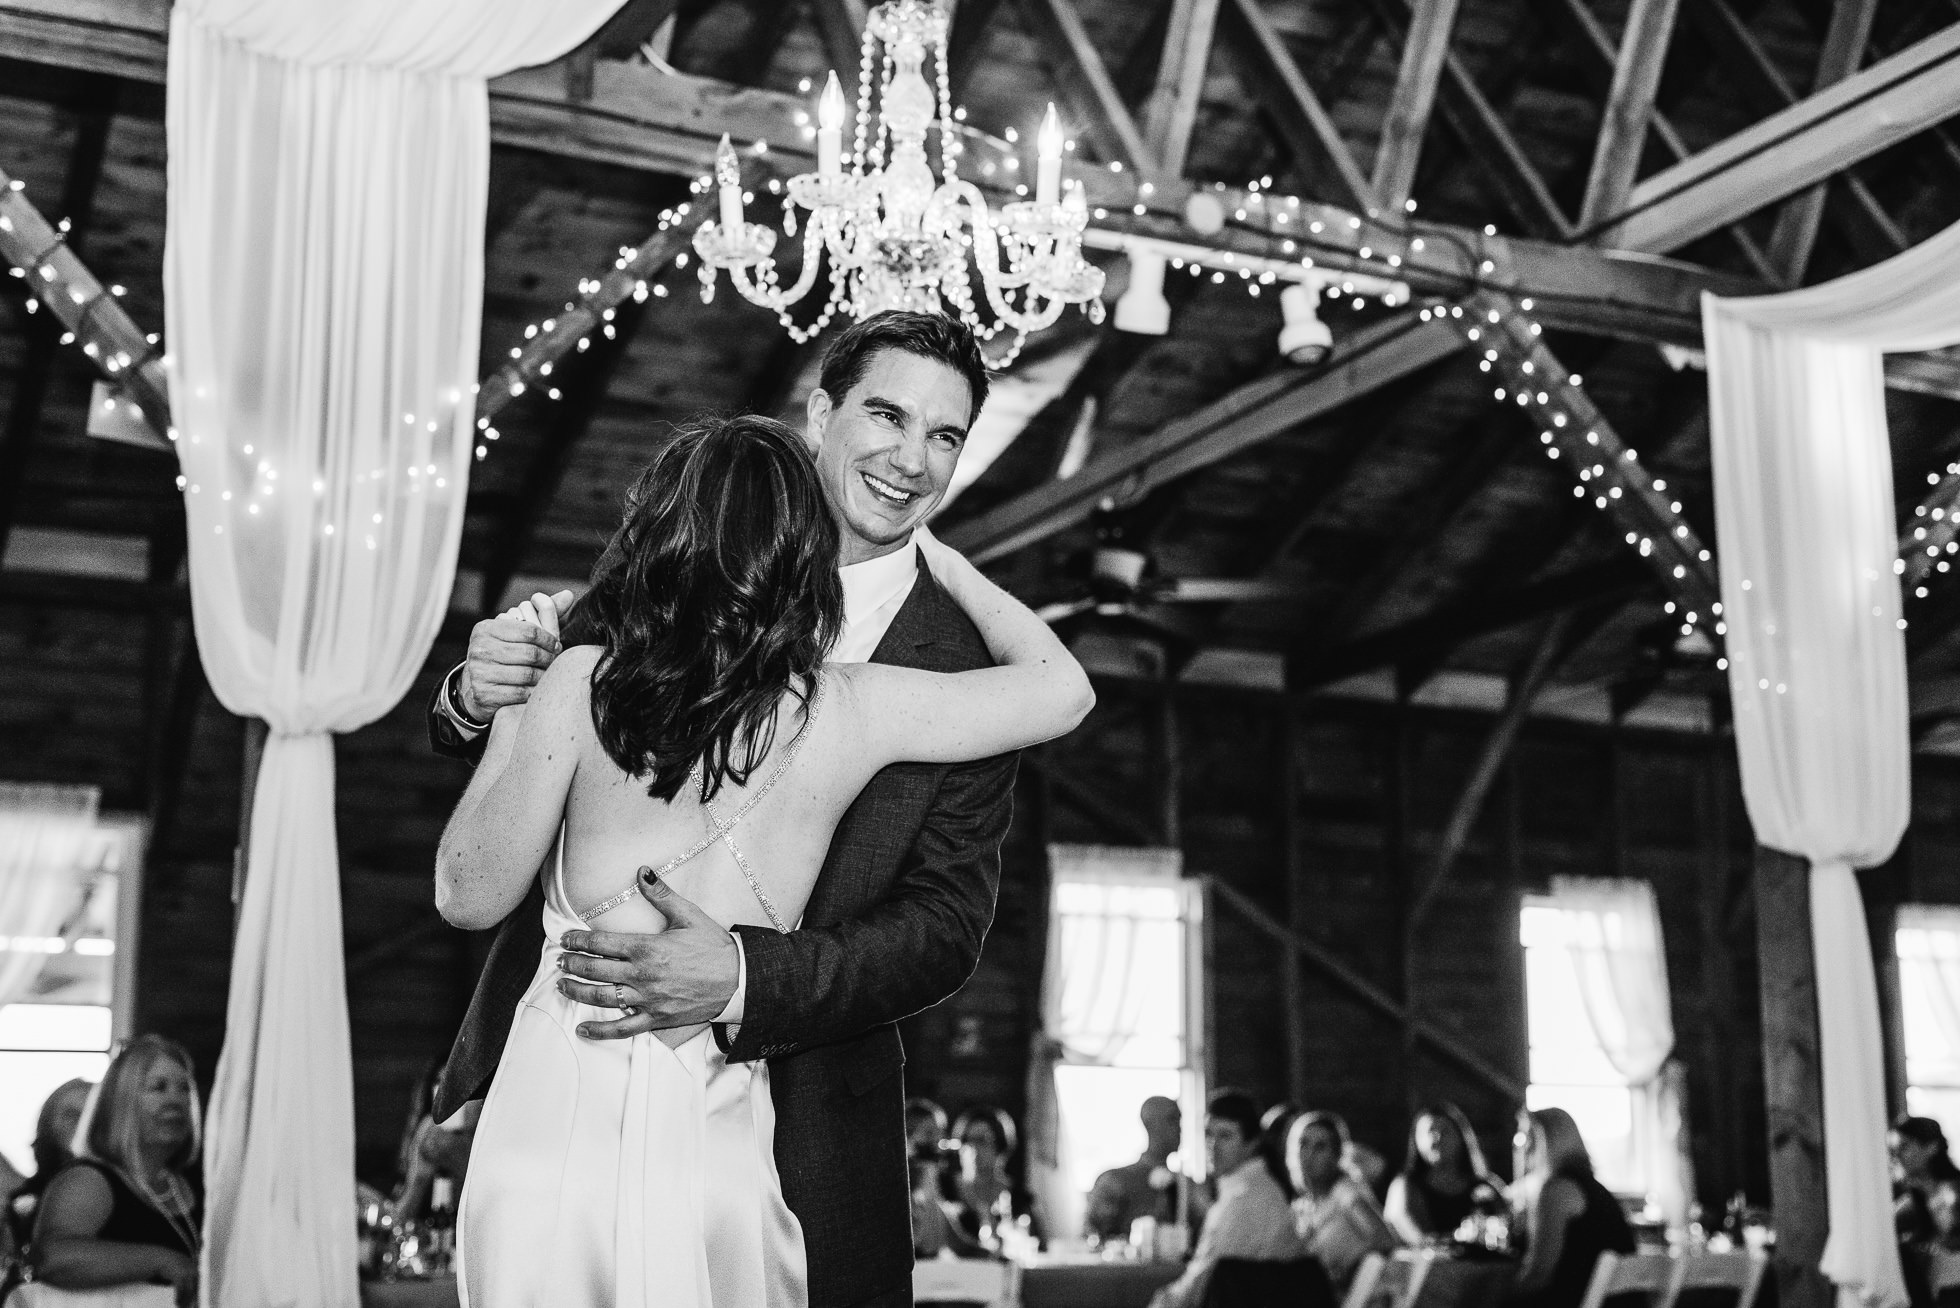 first dance at reception at olde tater barn wedding in central bridge, ny photographed by traverse the tides